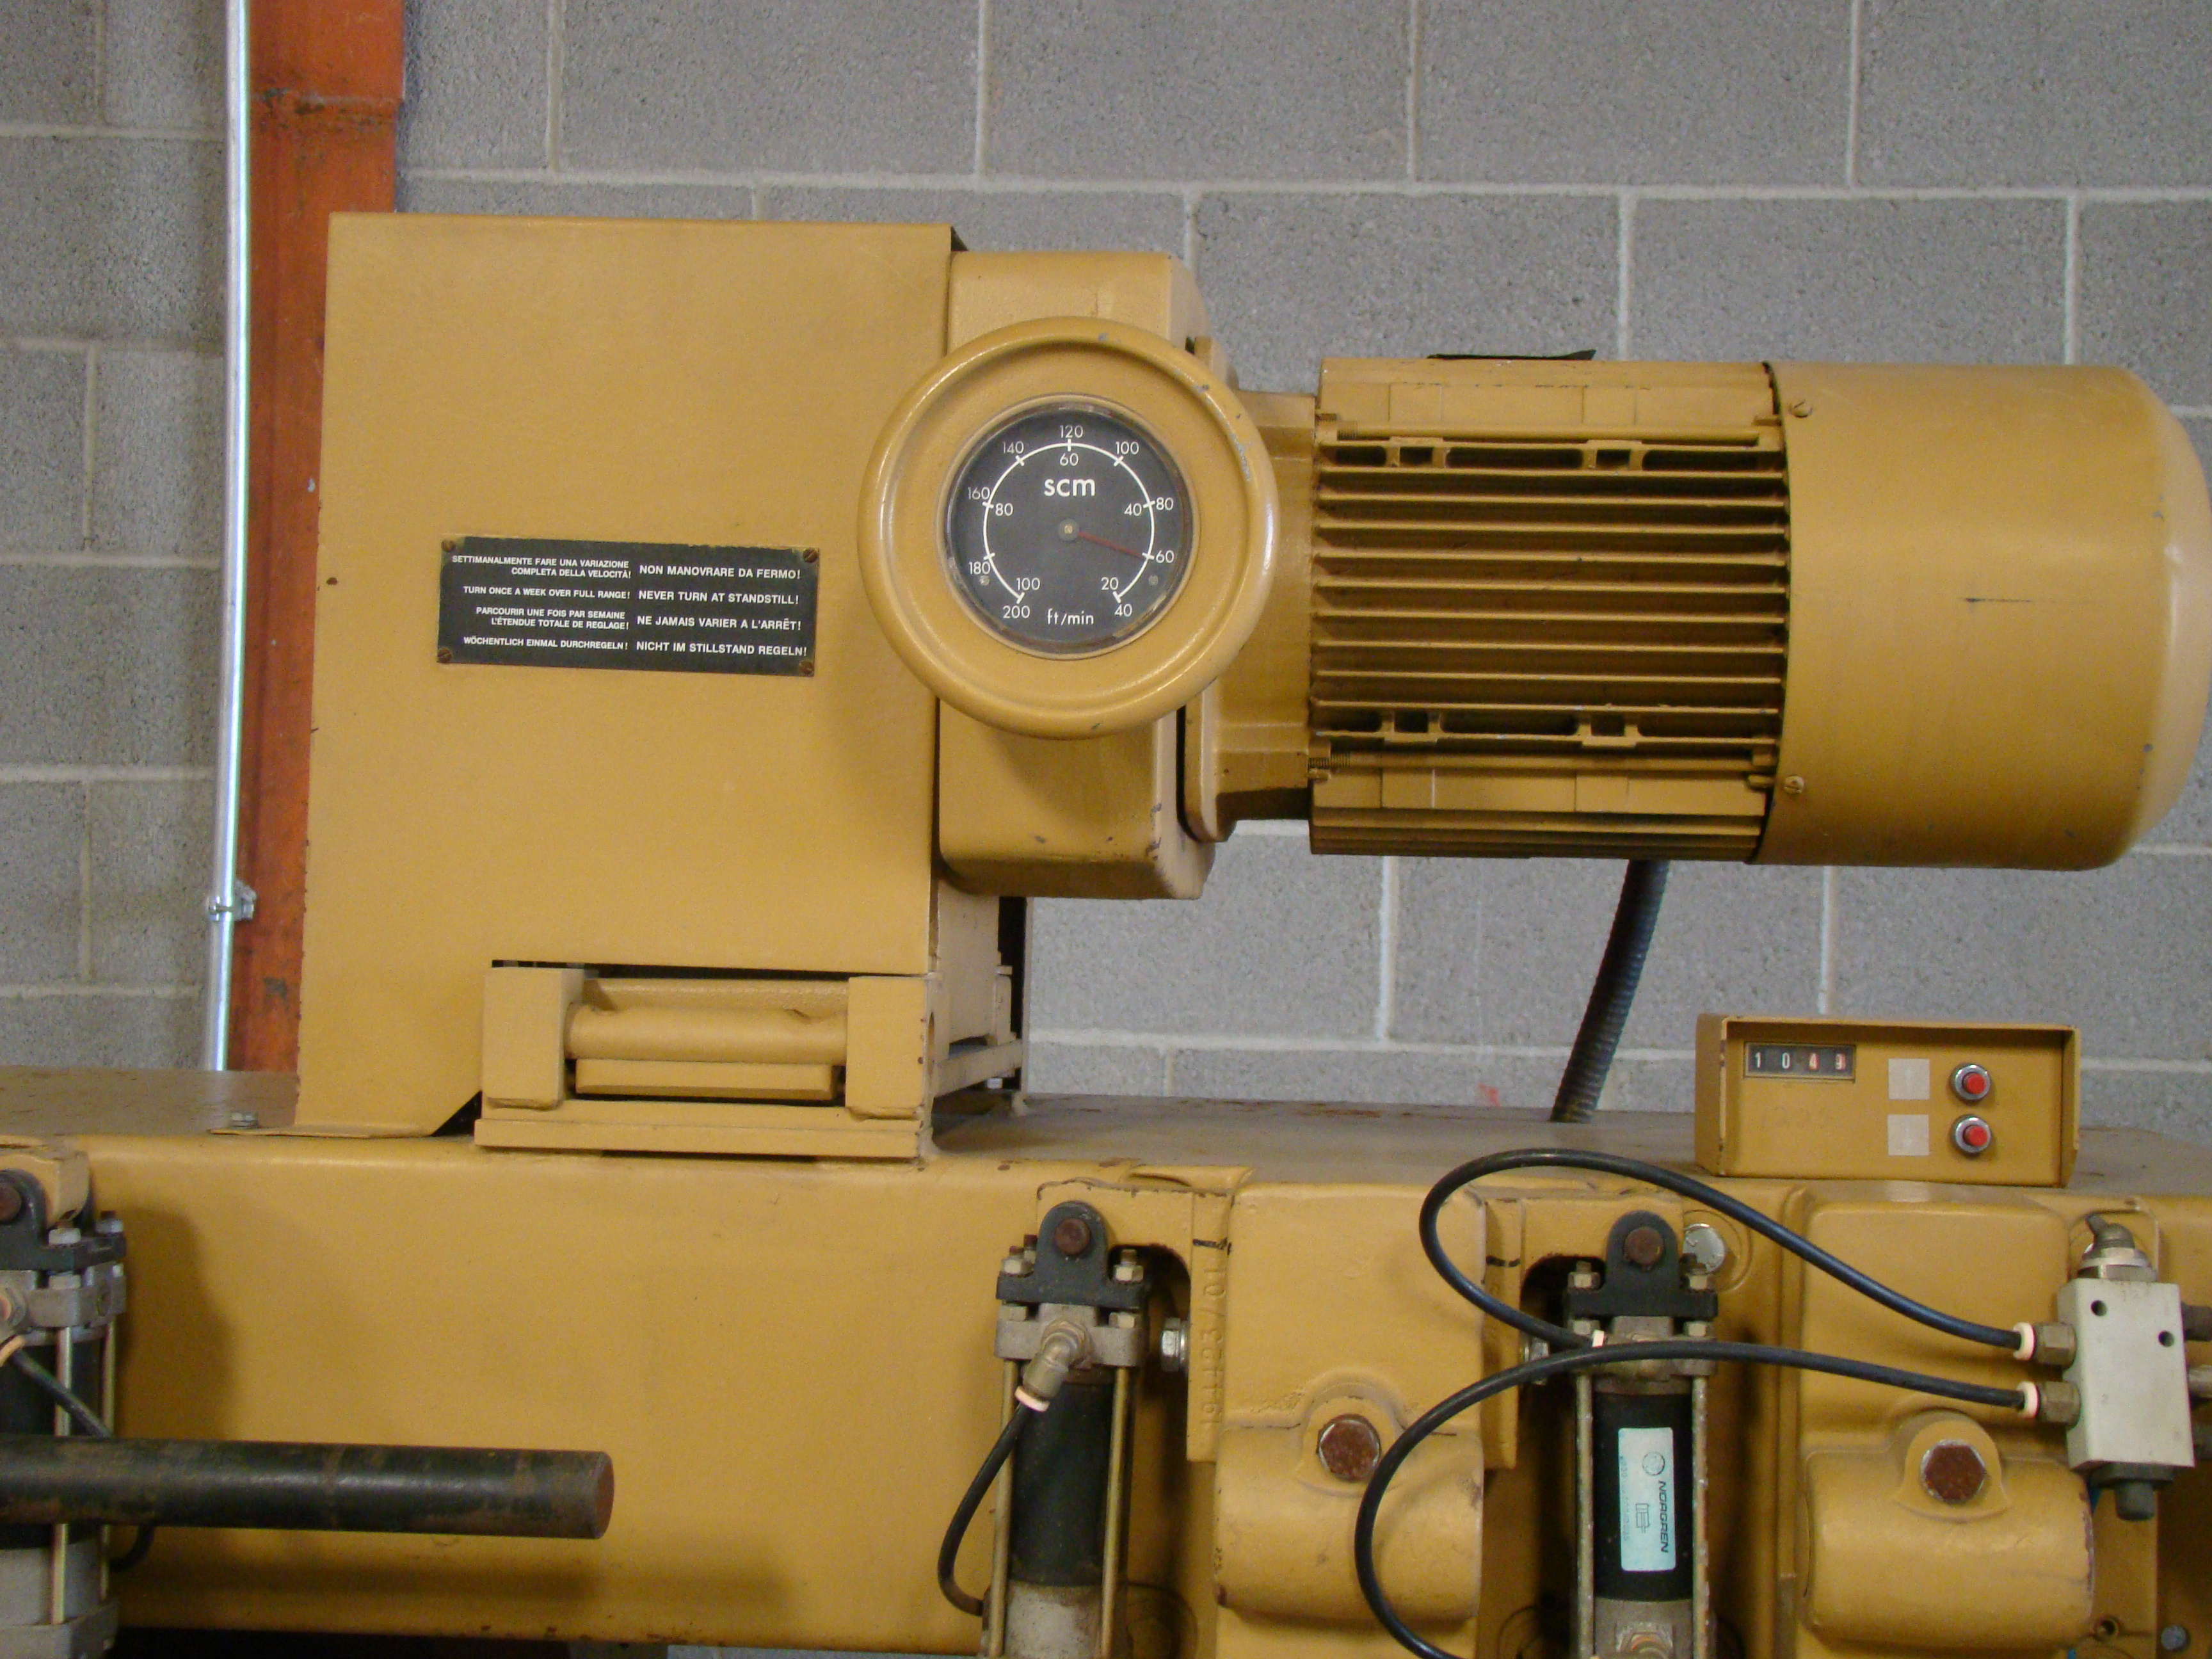 """SCMi 9"""" Wood Moulder, Model: P230 5 Head 6.6HP 220/440 Volts 3Phase - Image 12 of 14"""